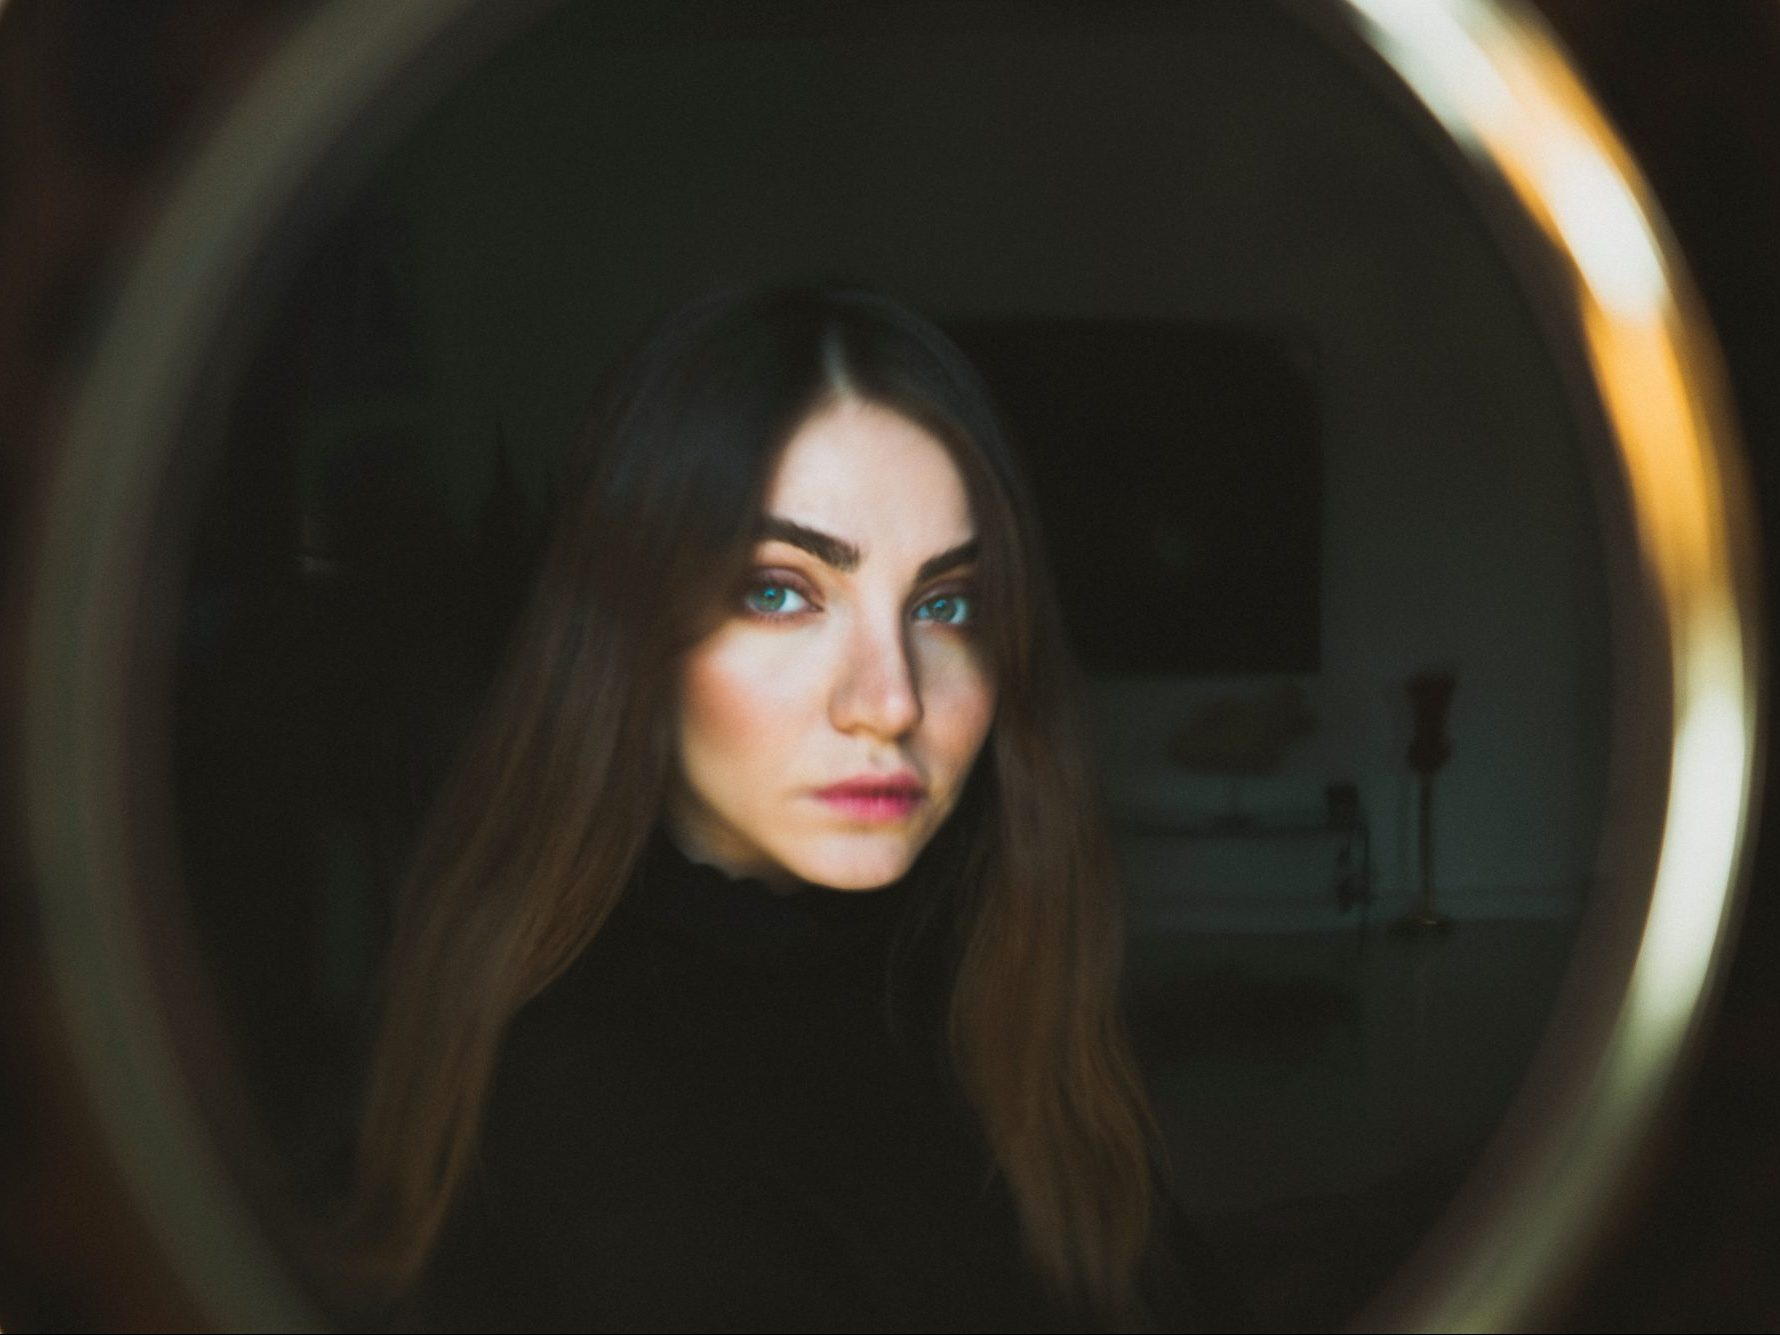 Dysmorphia, self-love, myths and the magic of mirrors